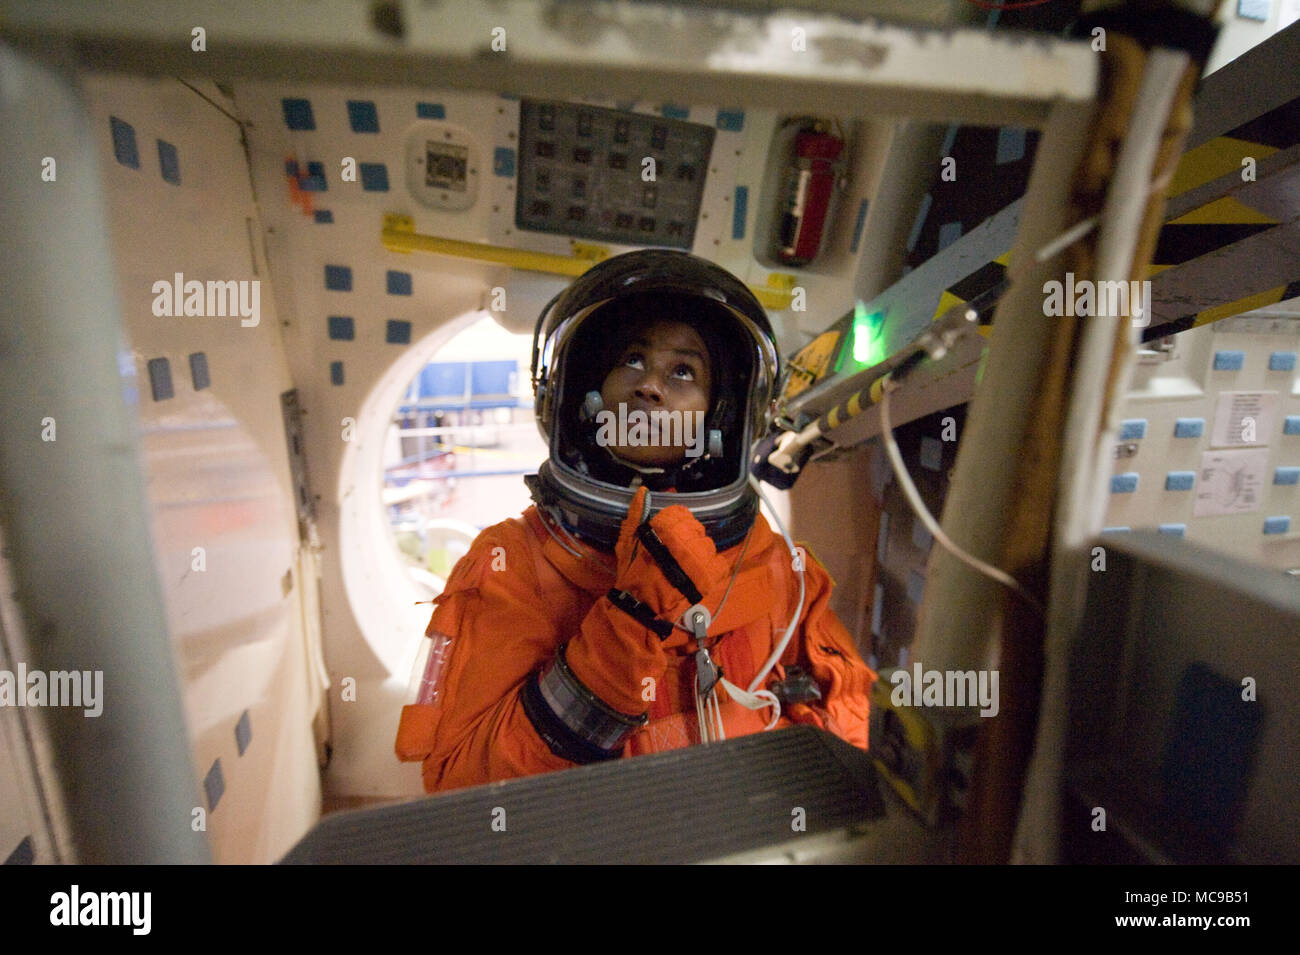 NASA astronaut Stephanie Wilson is attired in a training version of her shuttle launch and entry suit, as she participates in a training session in the Space Vehicle Mock-up Facility at the Johnson Space Center in preparation for the STS-131 mission. - Stock Image